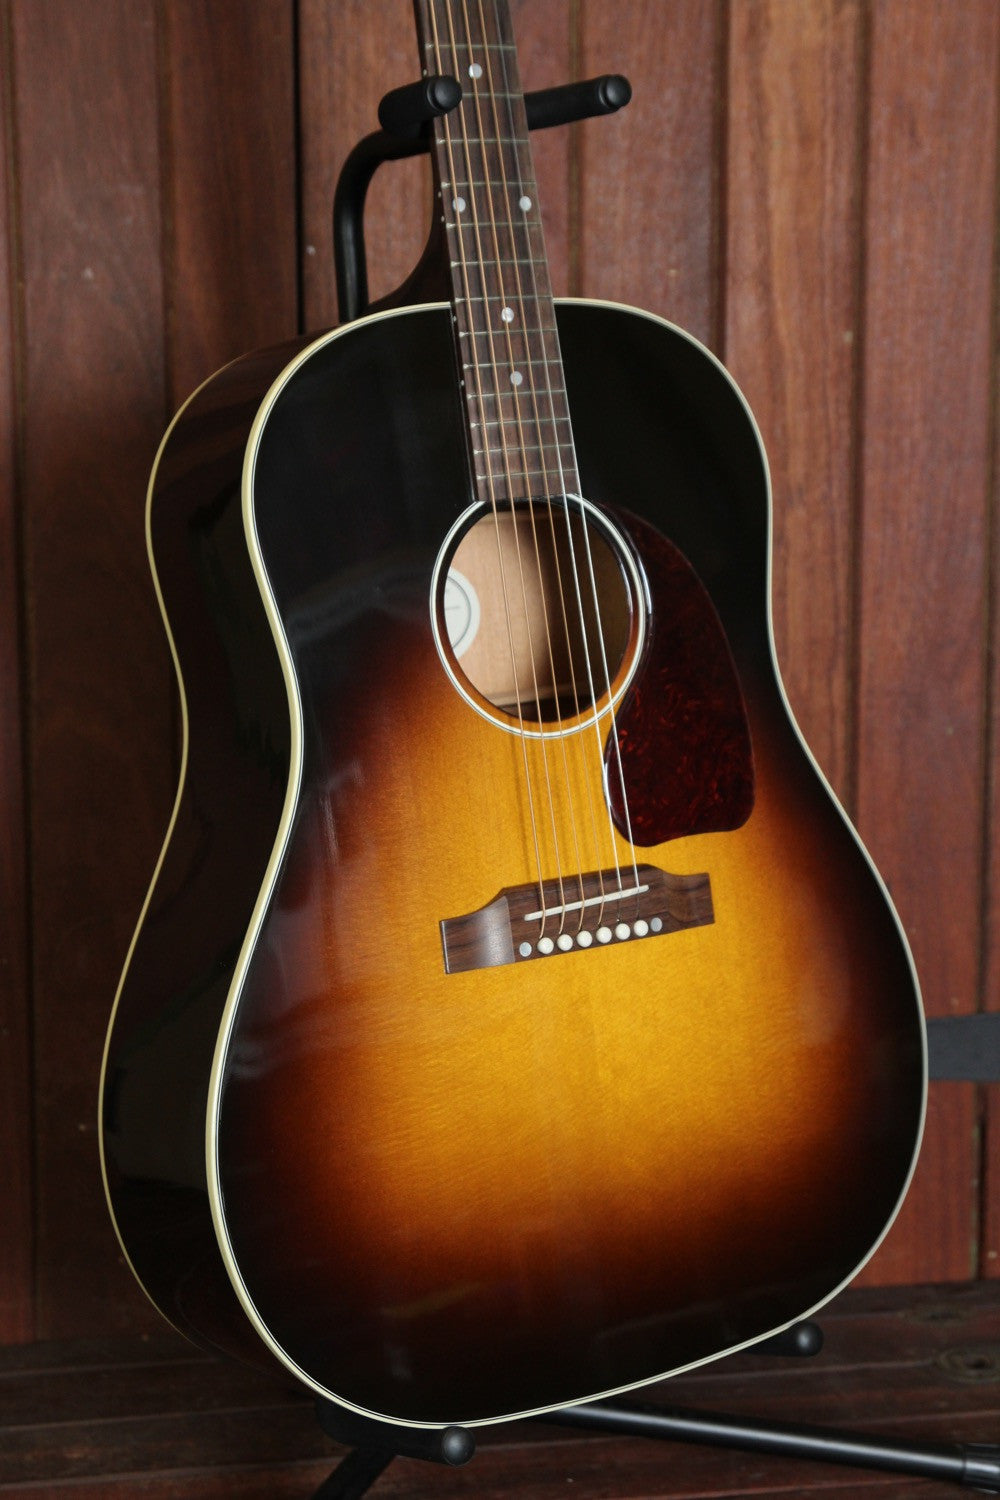 a9a83b7763b Acoustic Guitars Gibson J-45 Standard Acoustic-Electric Guitar Vintage  Sunburst 2019